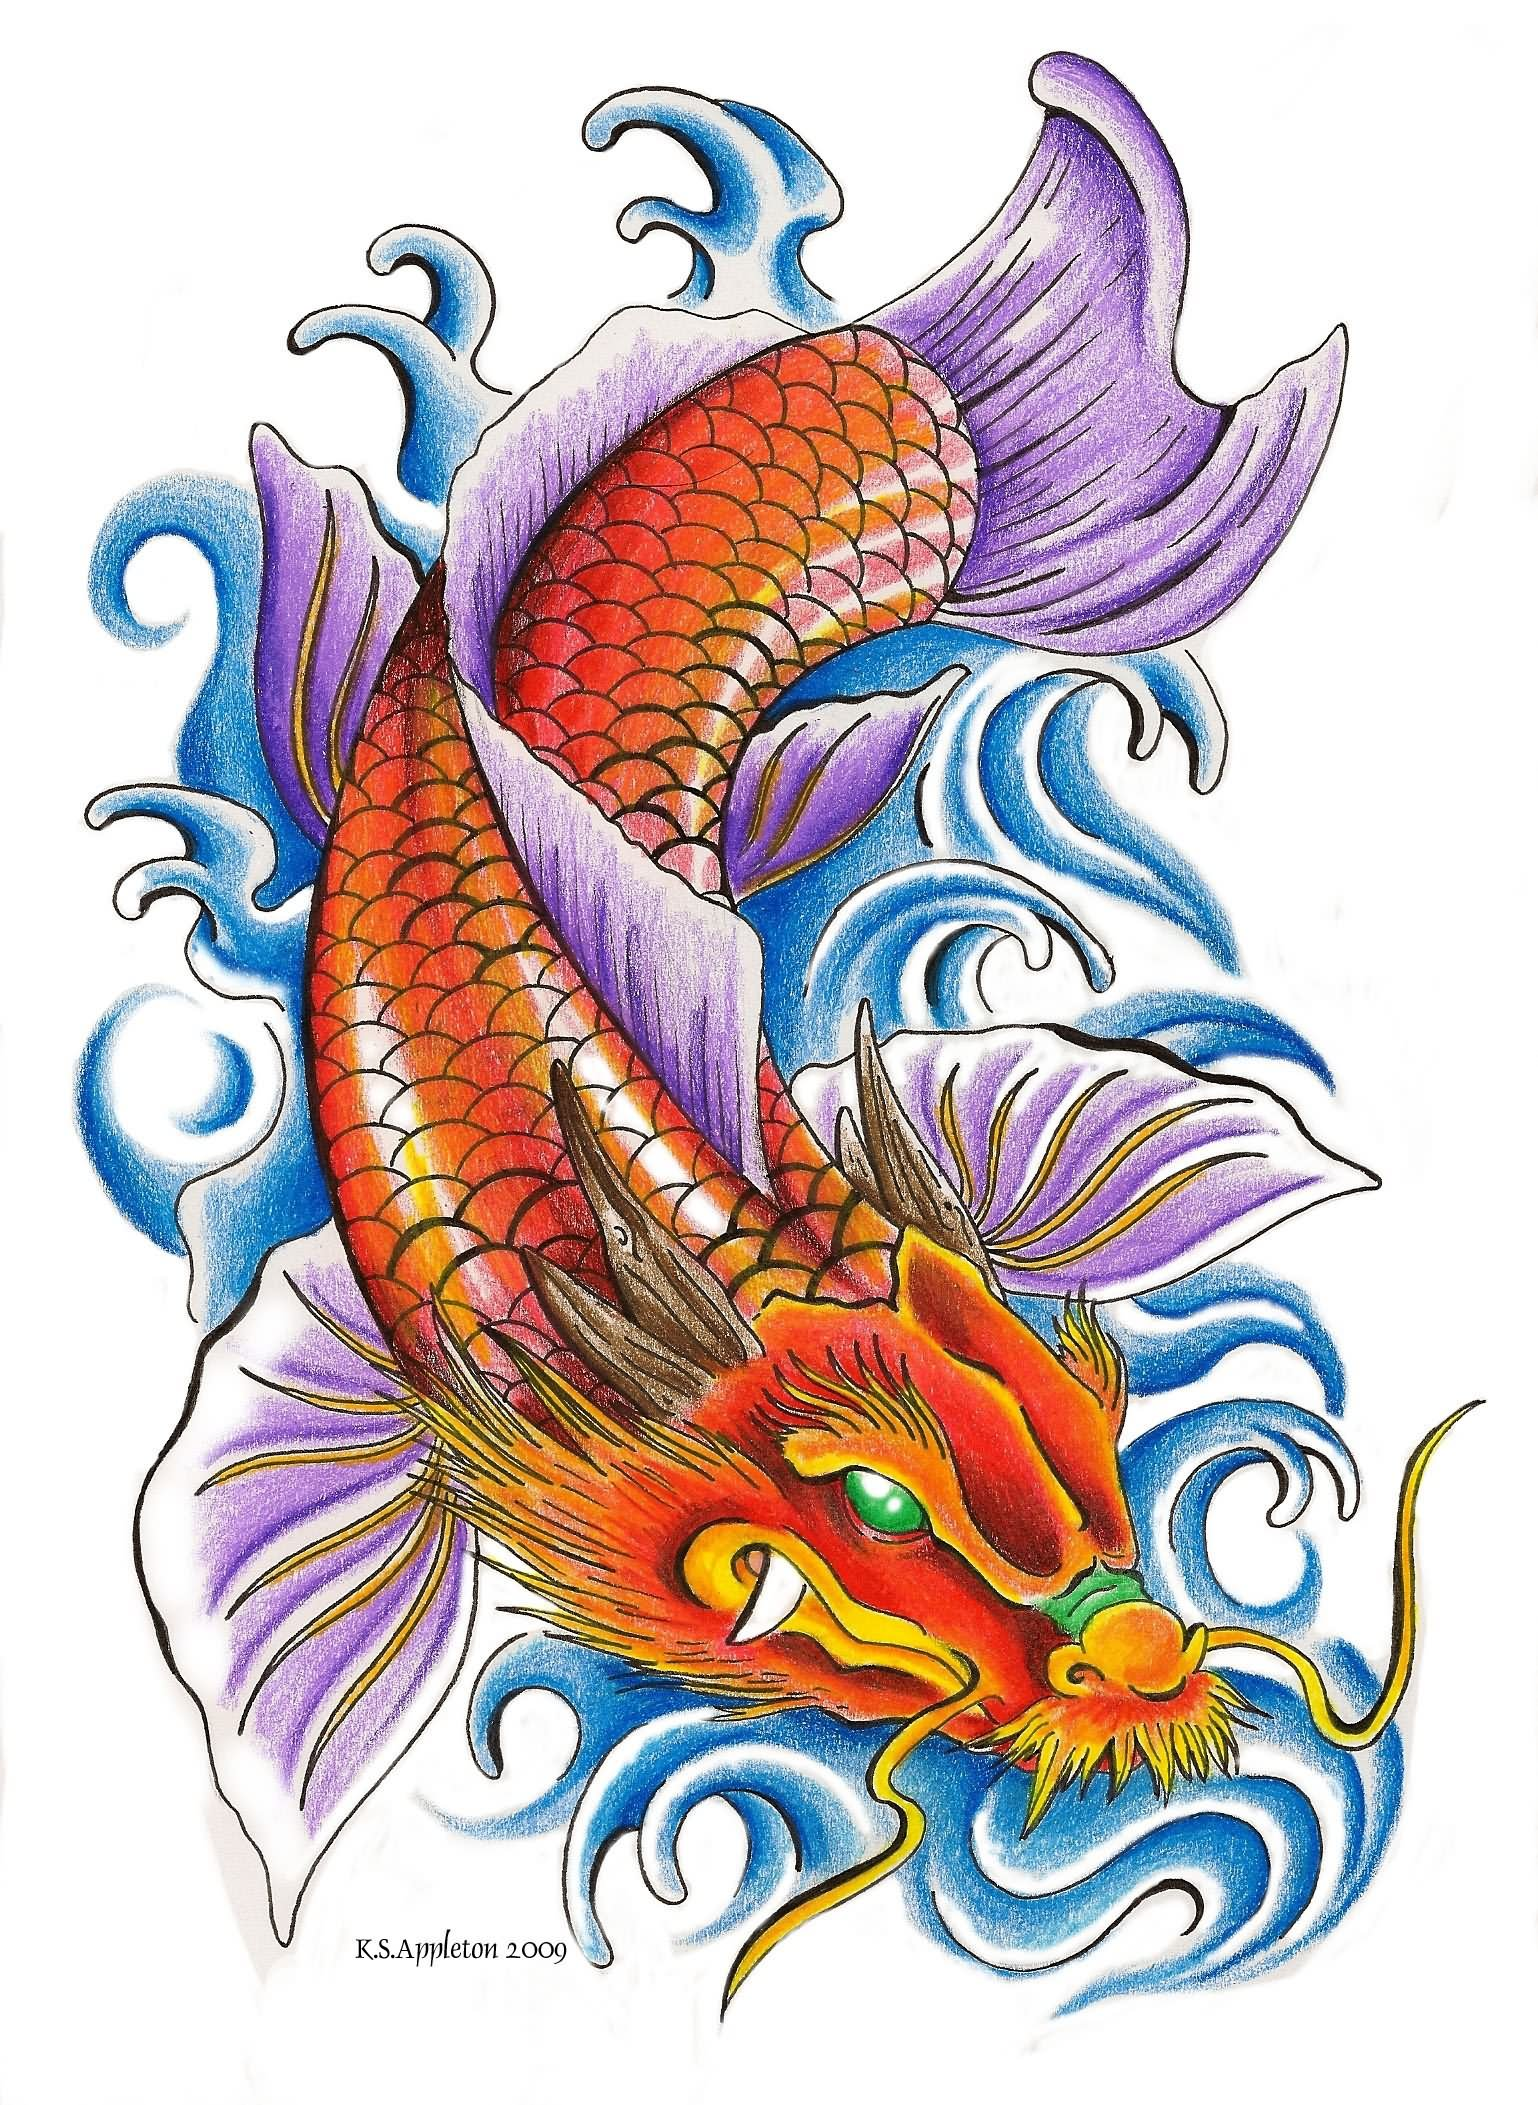 Carp Fish Tattoo Images Designs: 30+ Nice Carp Fish Tattoo Designs